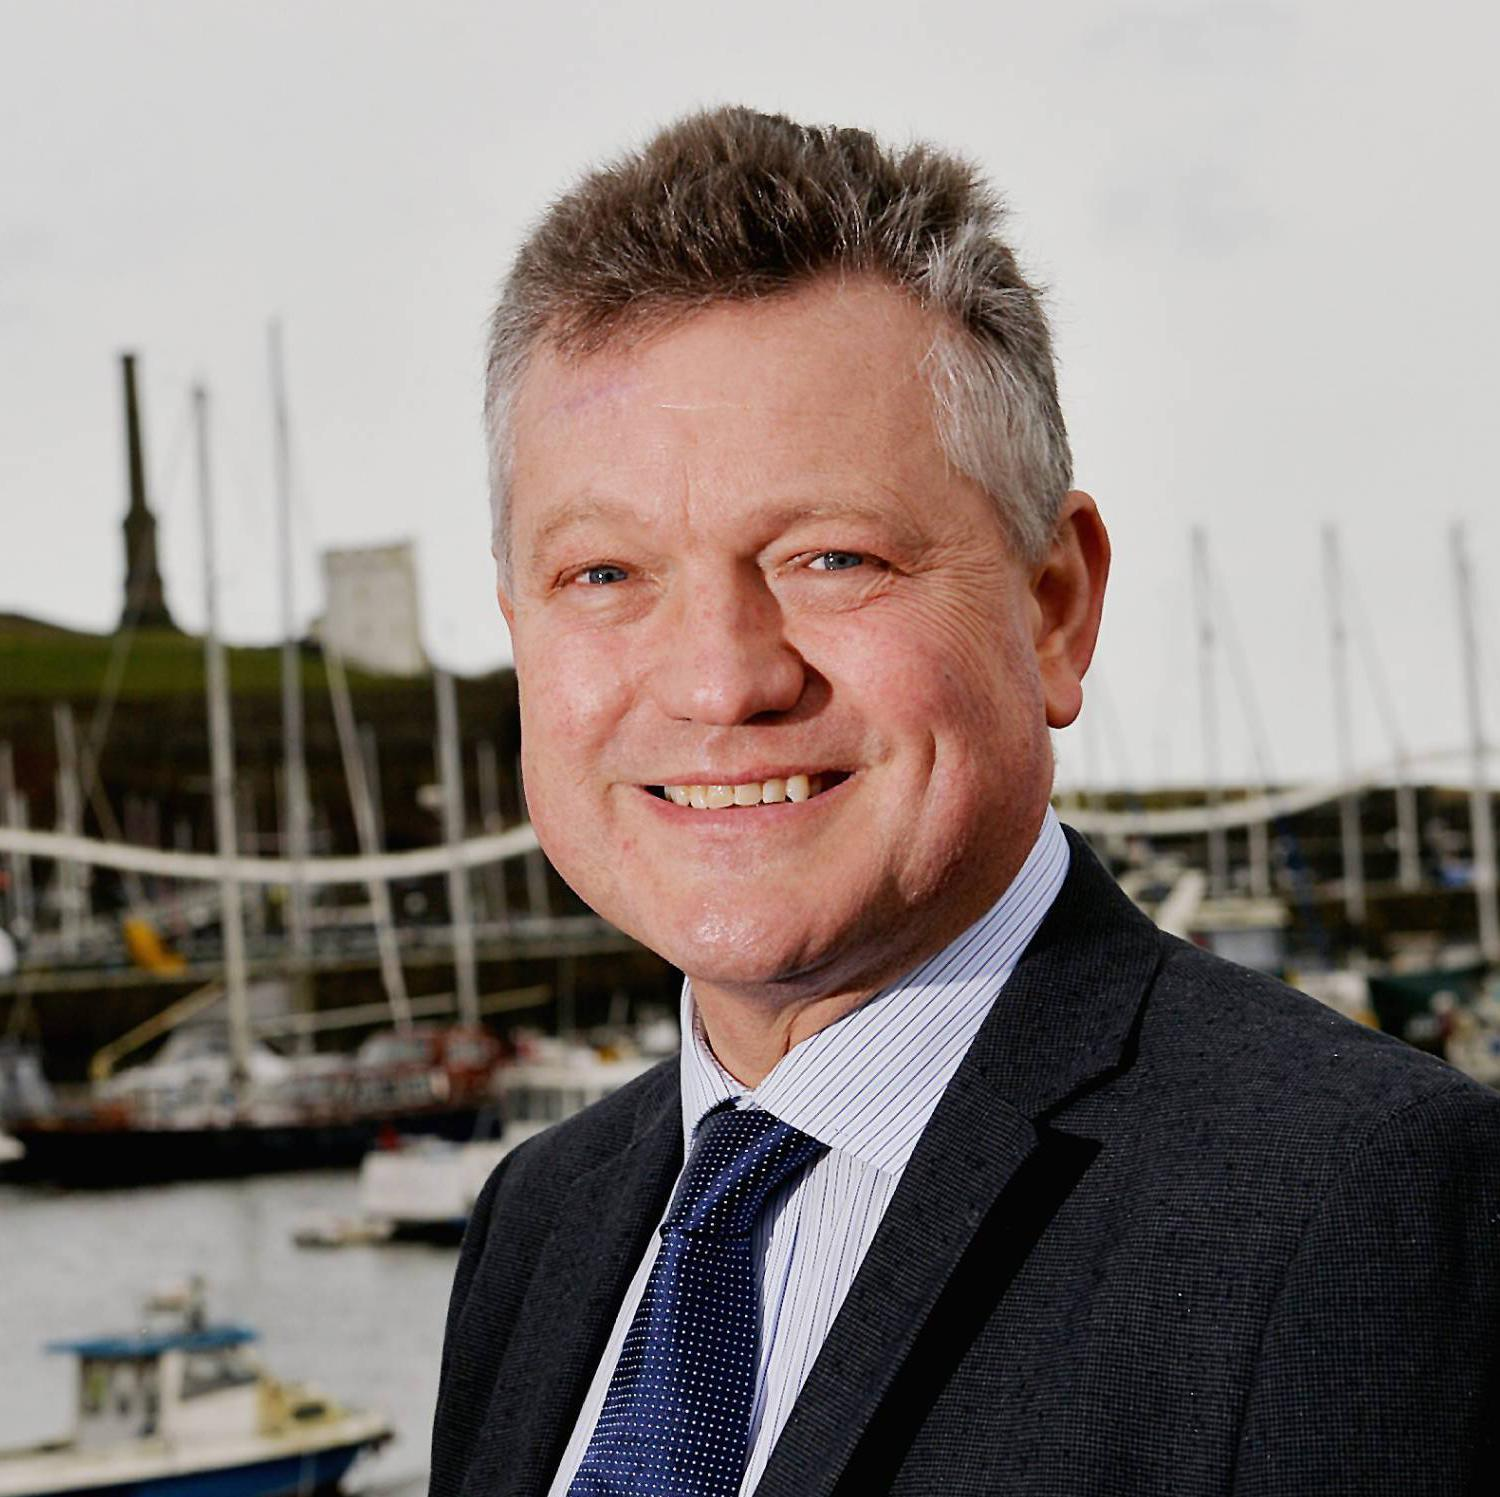 Mayor of Copeland Mike Starkie - North Shore Development  ..Pic Tom Kay     Tuesday 10th April 2018 50090100T008.JPG.